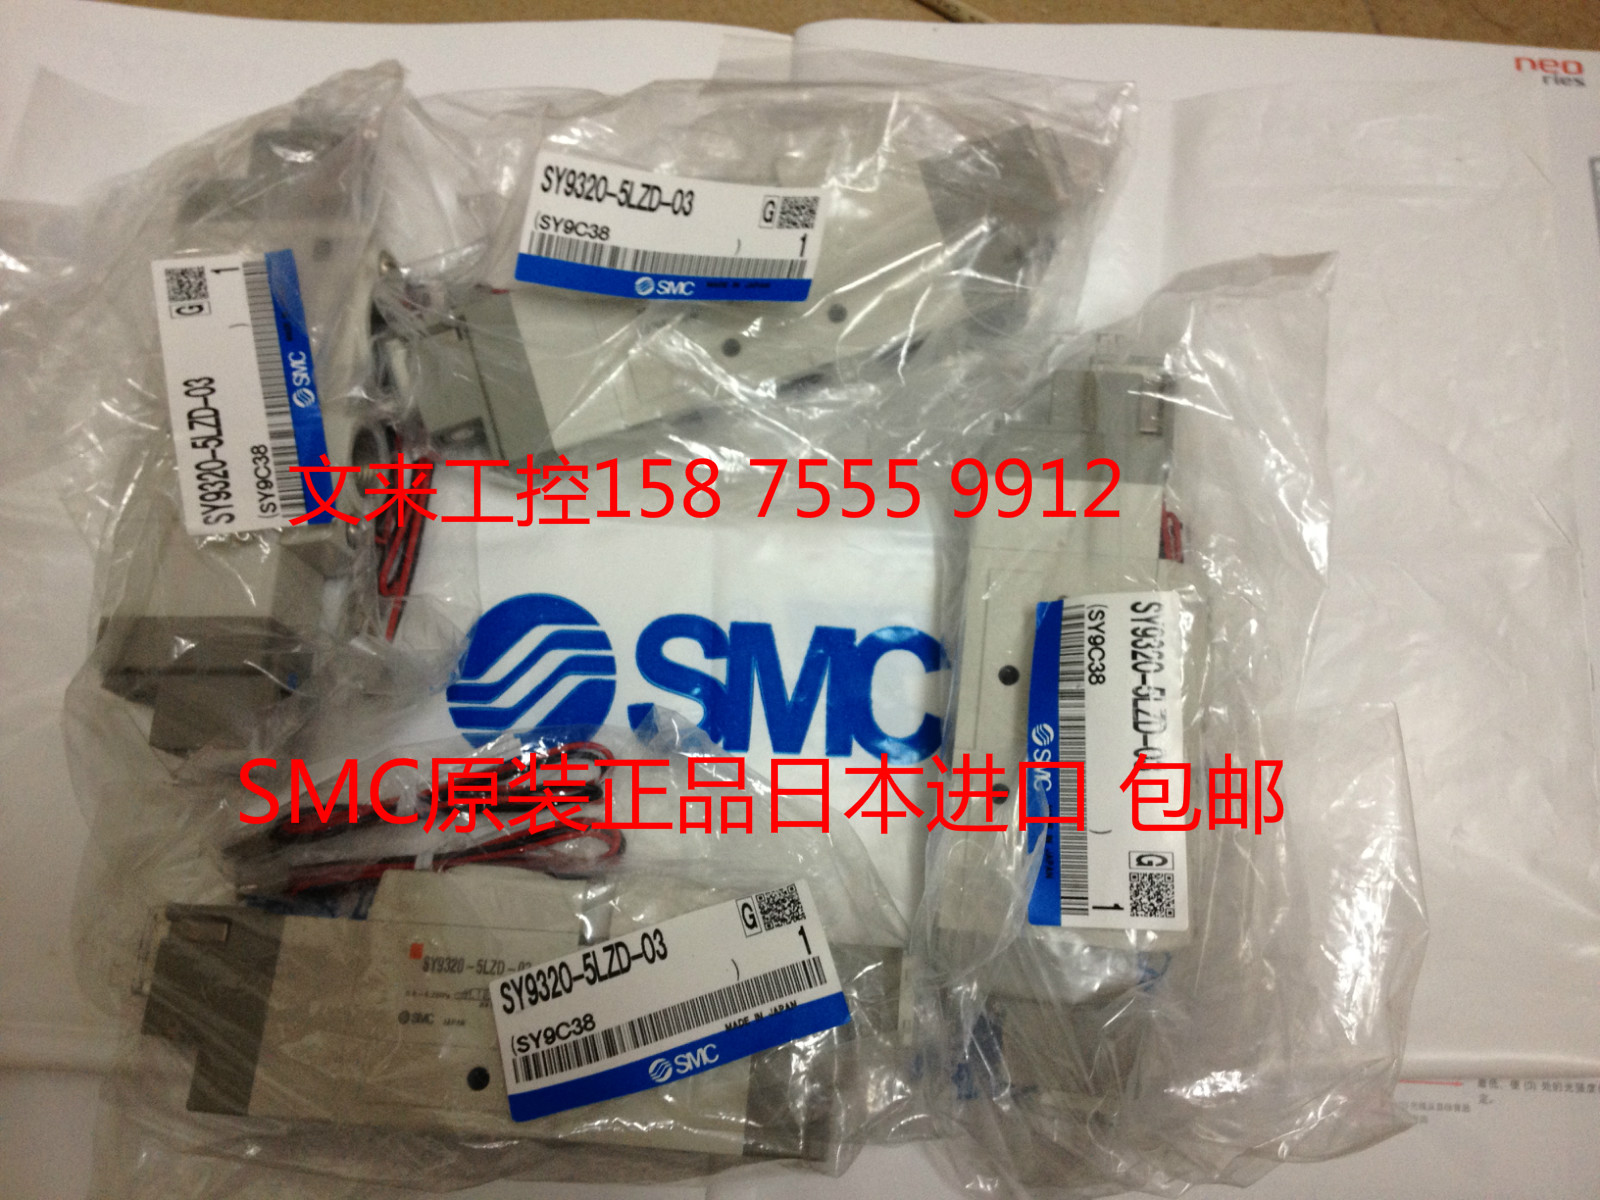 New original imported genuine SMC solenoid valve SY9320-5LZD-03 object image now loan